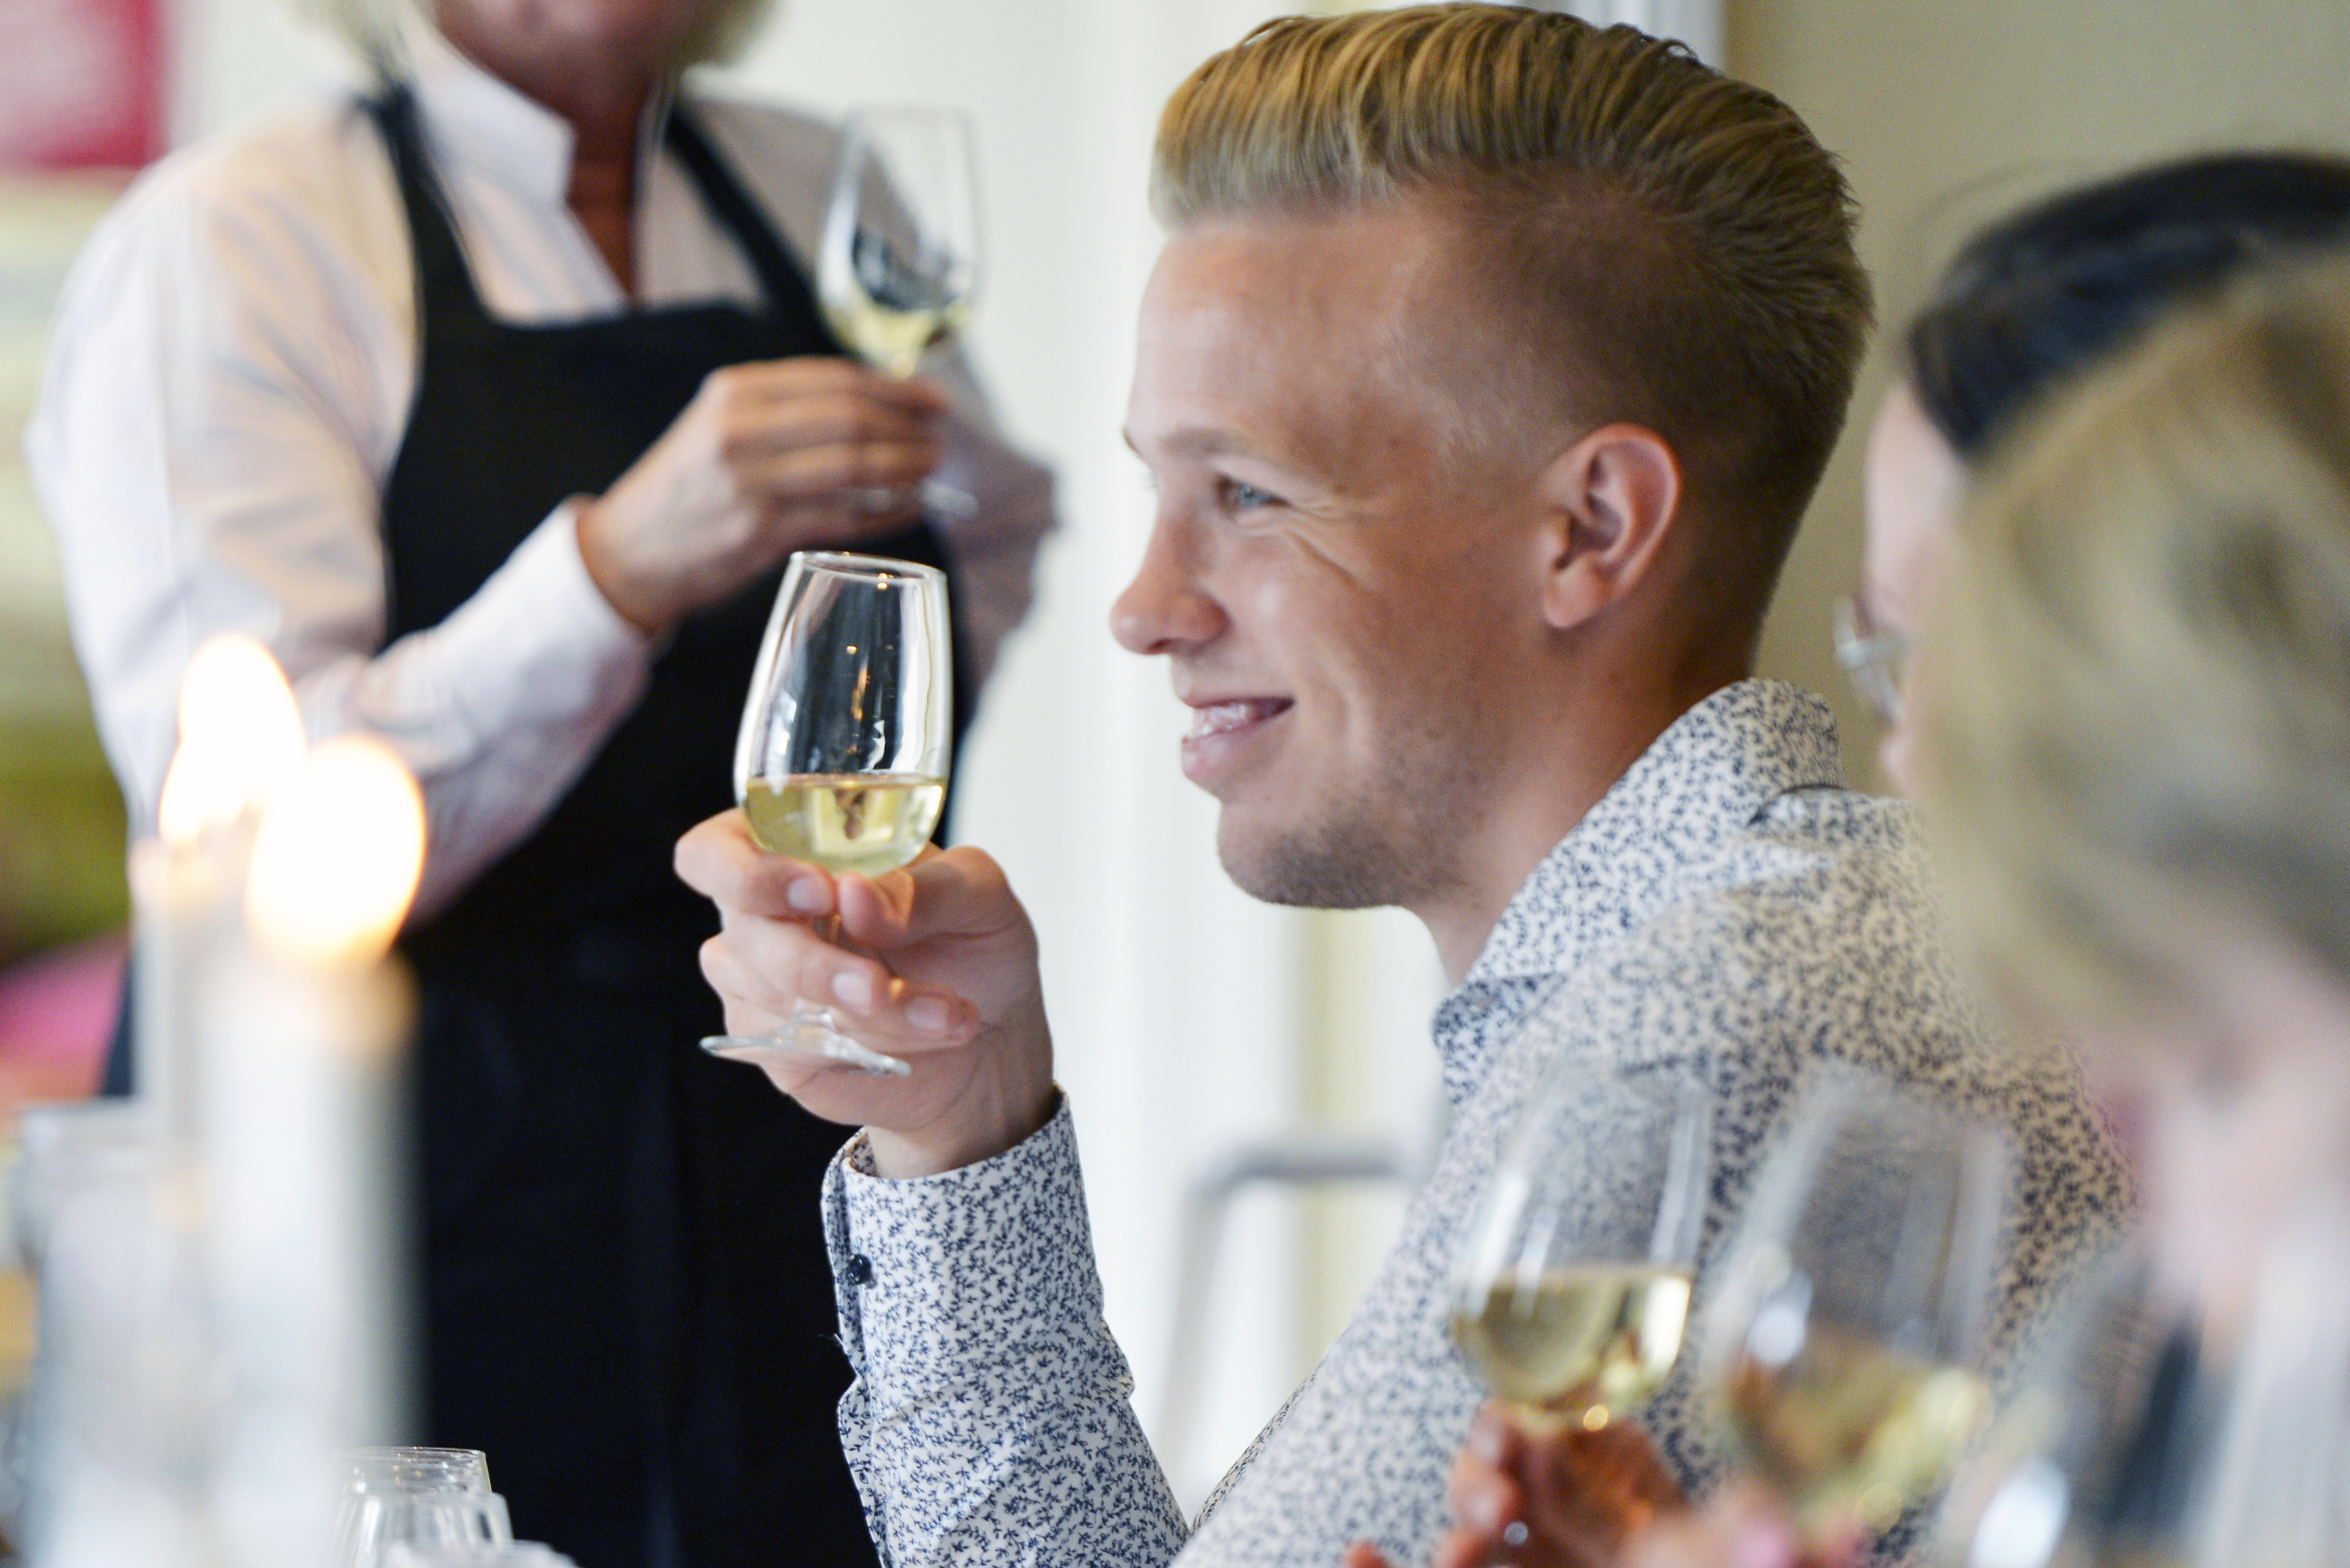 Stockholm Wine Tasting with a happy man trying out white wine